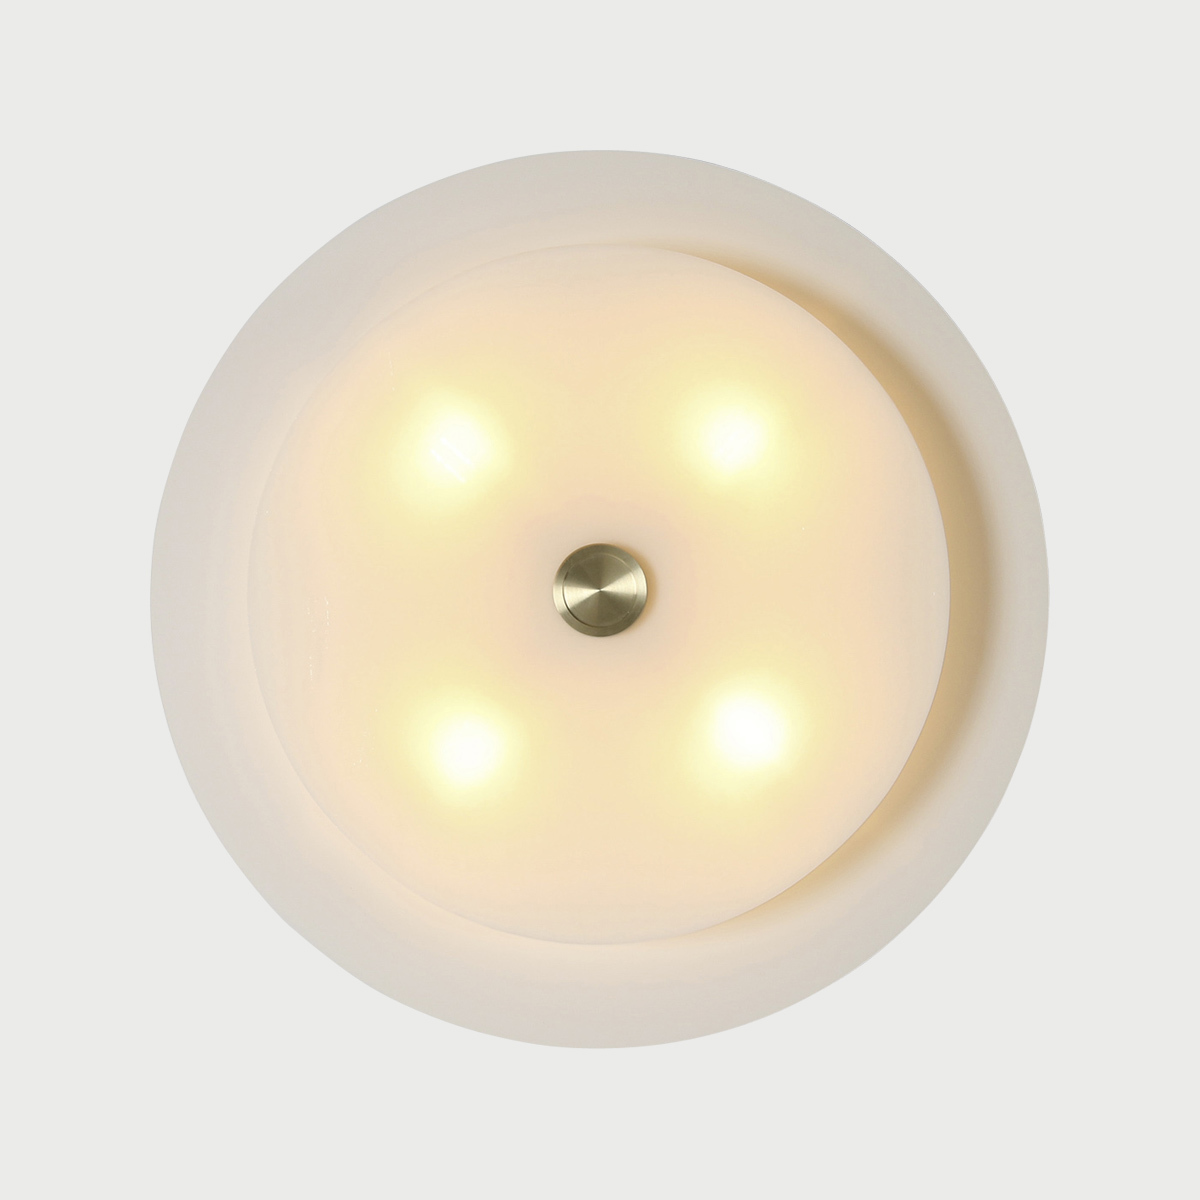 Equinox sconce warm white glass country cream steel front view studio dunn